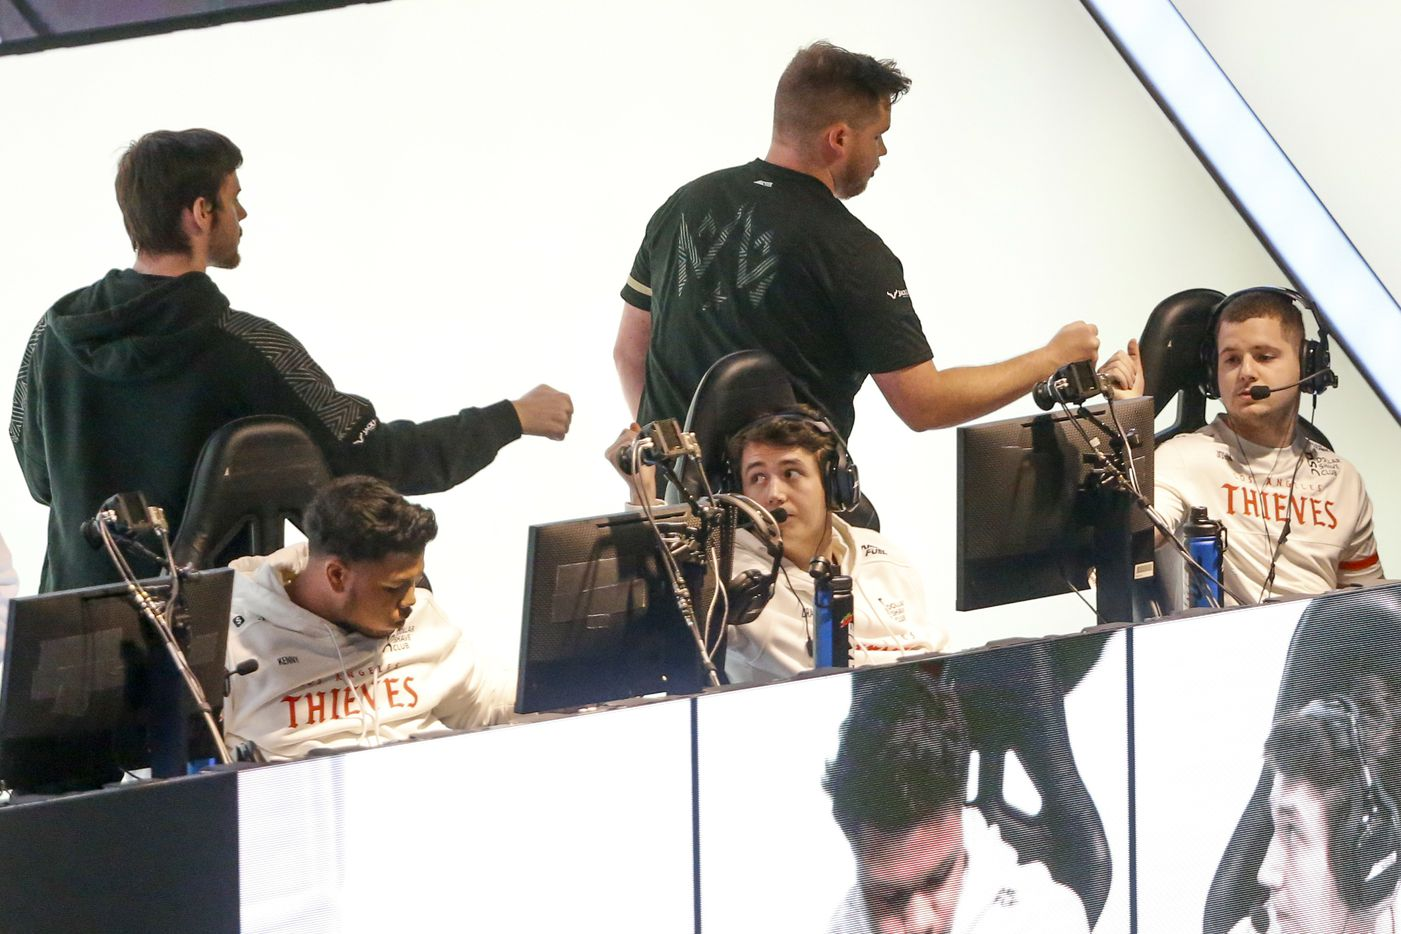 Members of Dallas Empire greet members of Los Angeles Thieves after a match during the Call of Duty League Major V tournament at Esports Stadium Arlington on Saturday, July 31, 2021, in Arlington. Empire defeated Thieves 3-1 to advance in the tournament. (Elias Valverde II/The Dallas Morning News)